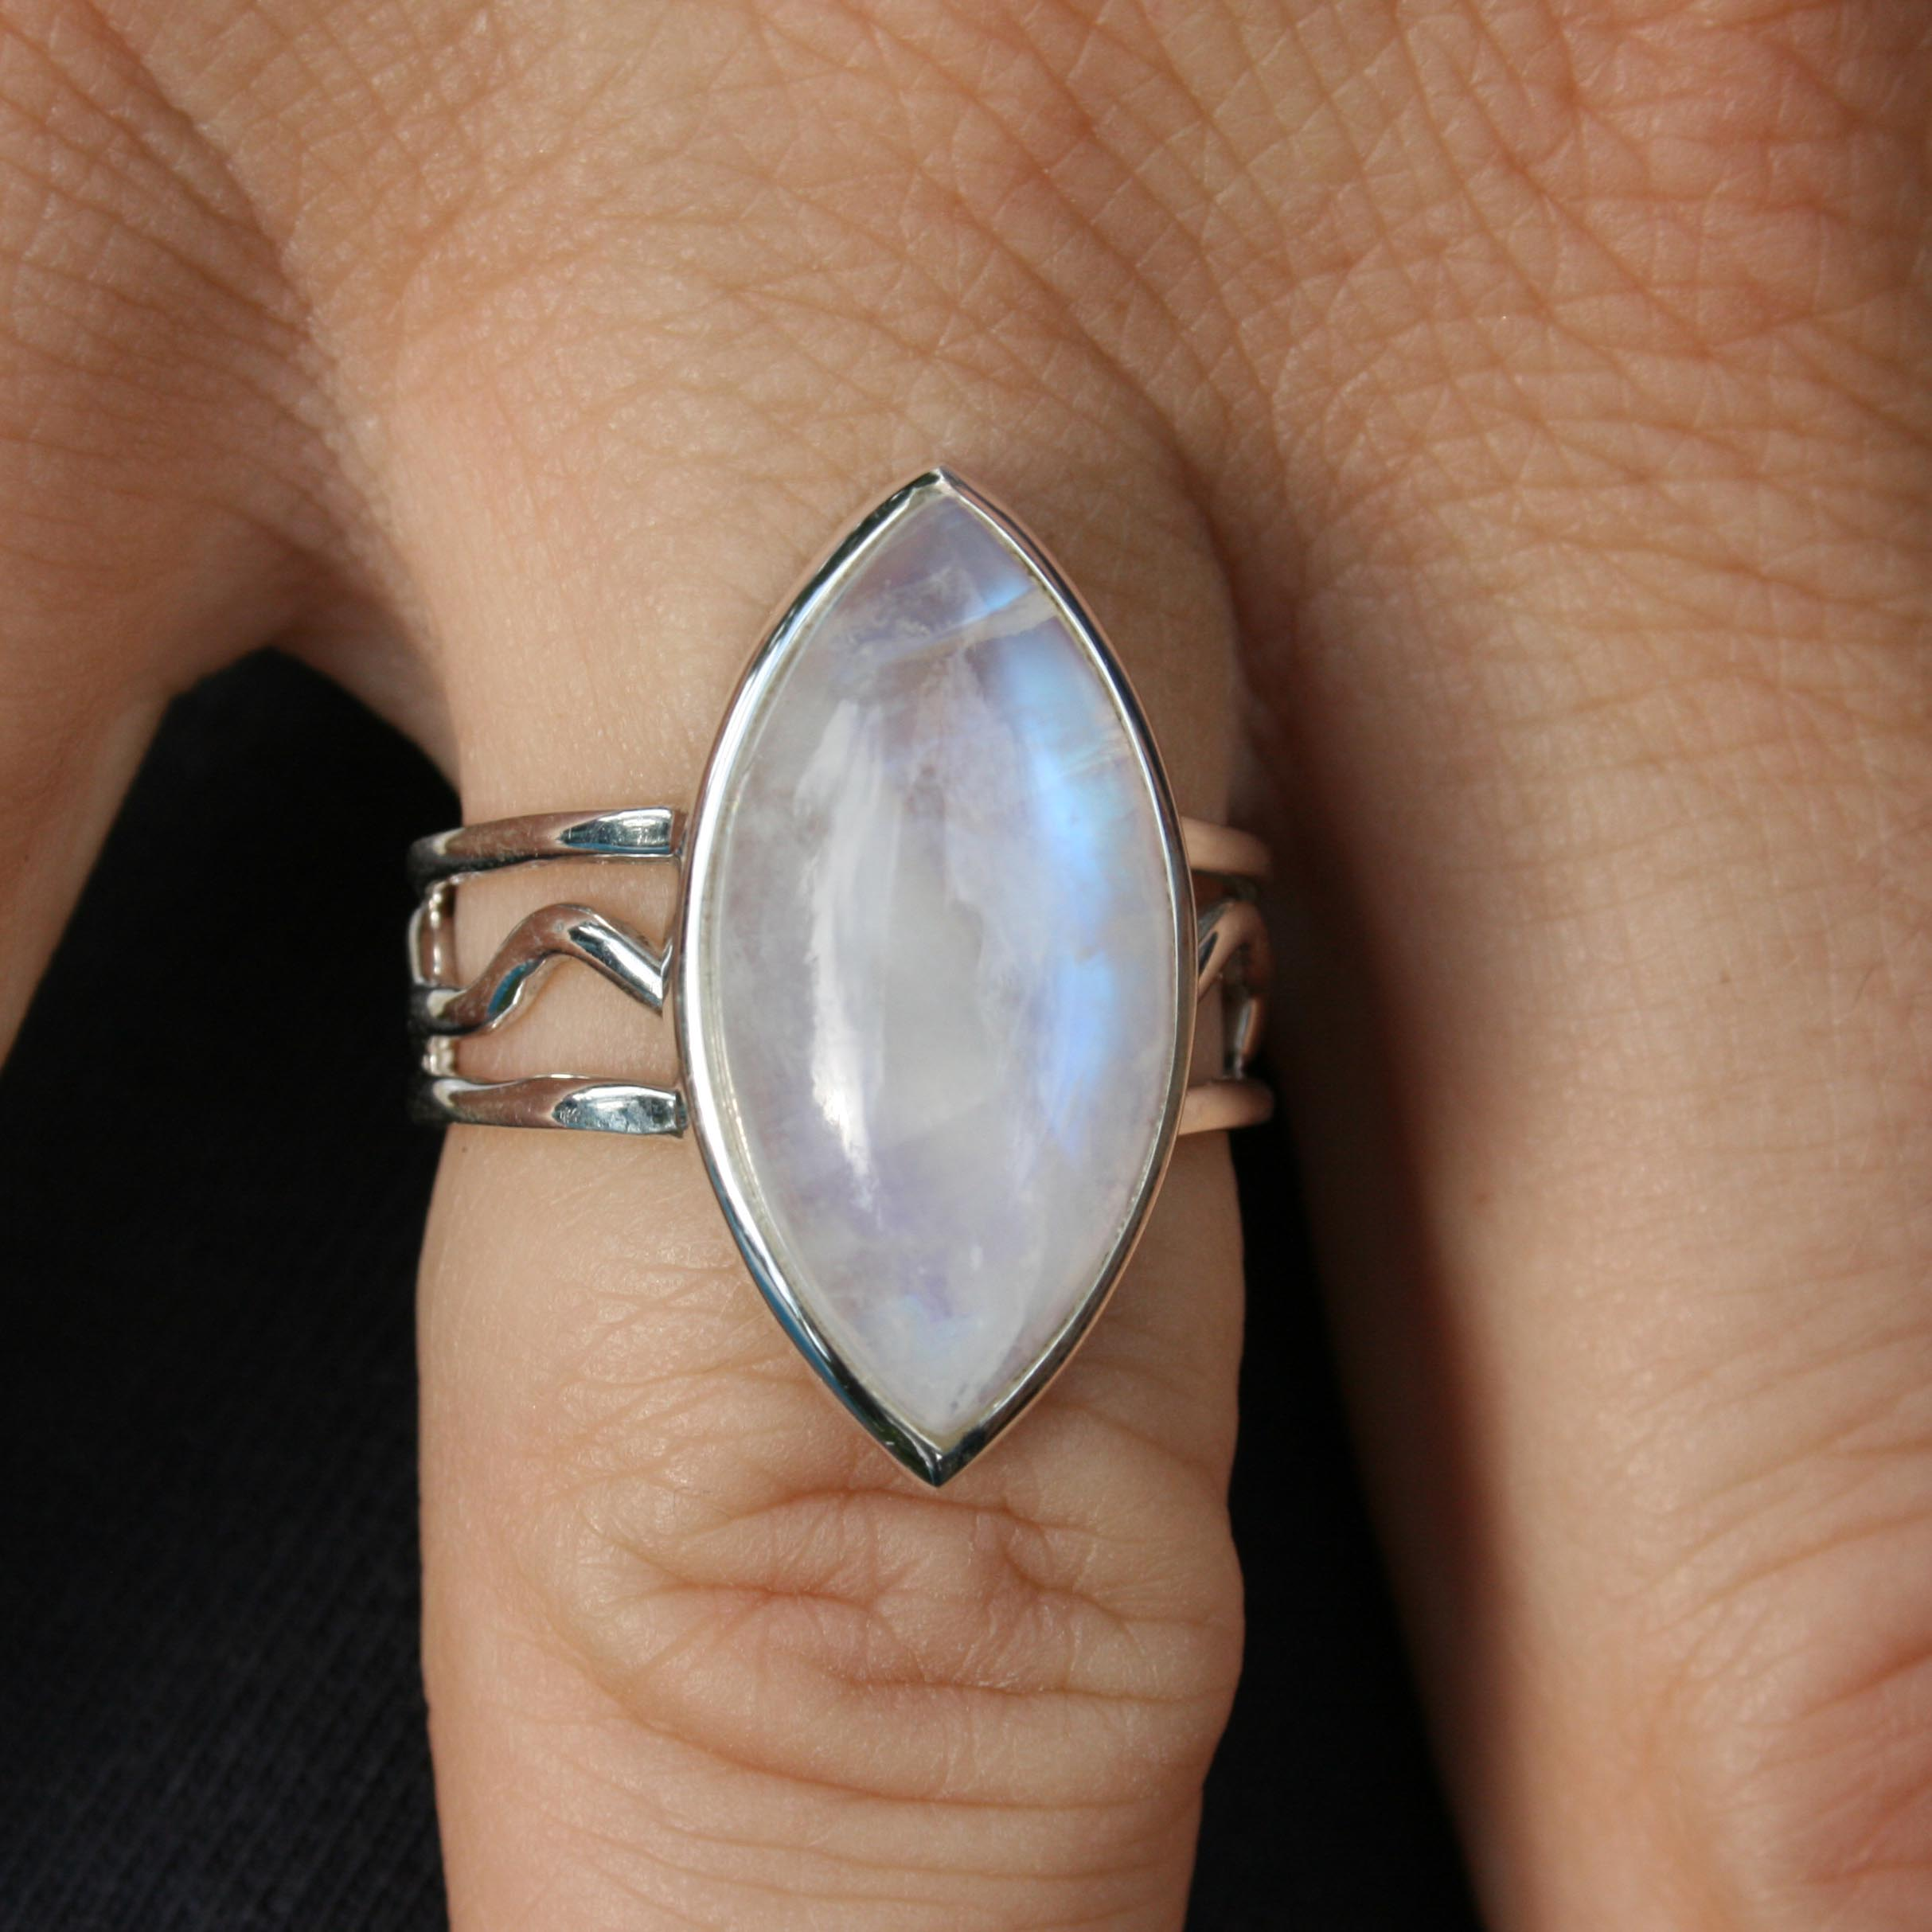 rainbow collections dibs ring gold pamela pf froman szor diamond hammered moonstone products rings white